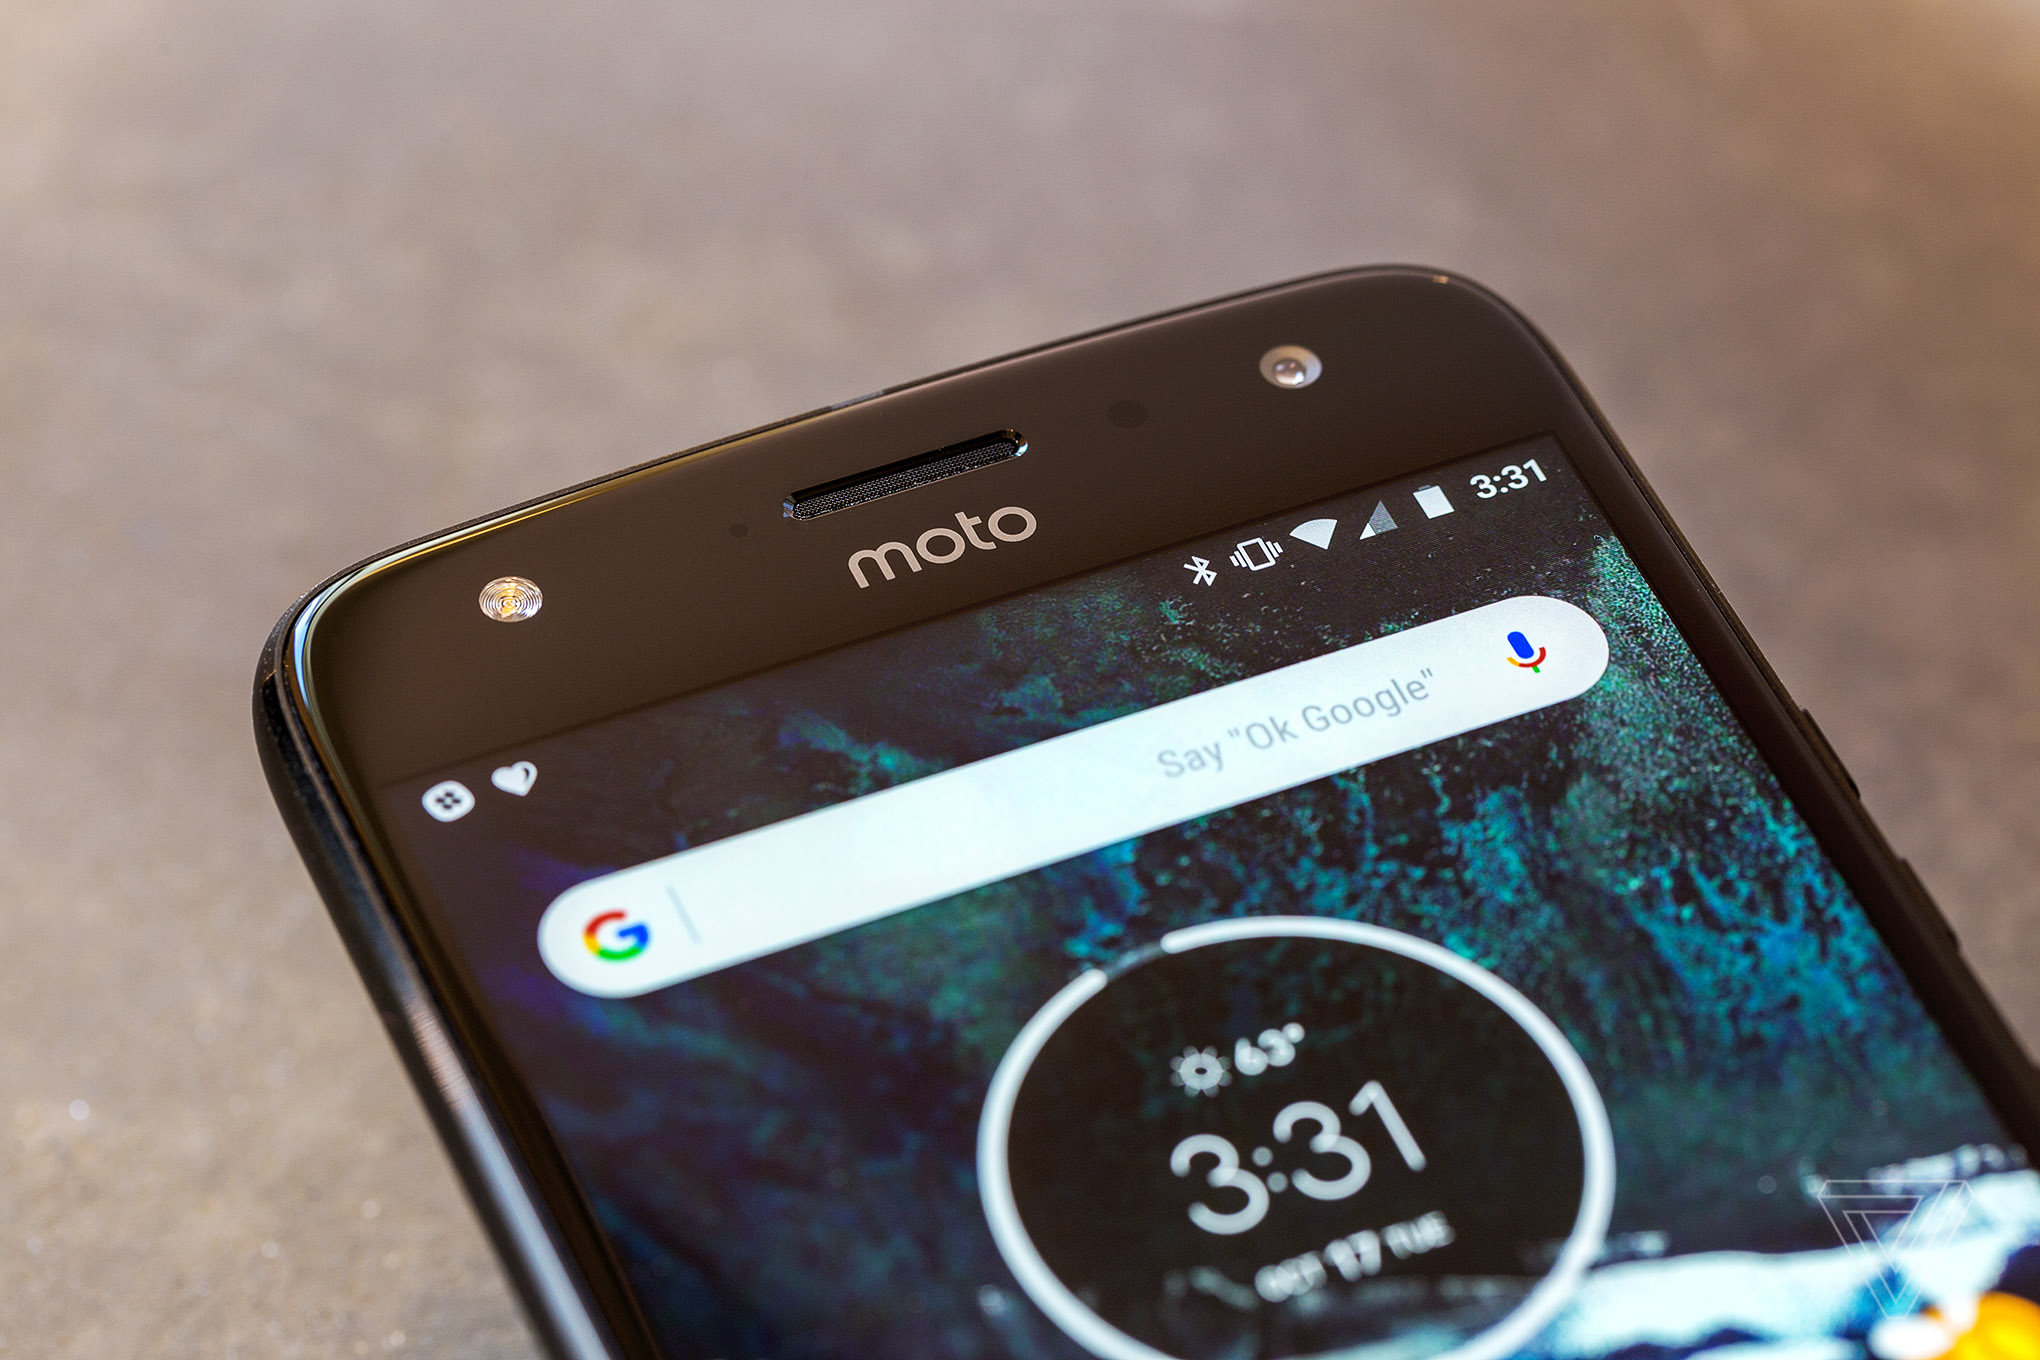 motorola x4. the moto x4 android one version has identical hardware and design to that will be sold through motorola in us other parts of world.